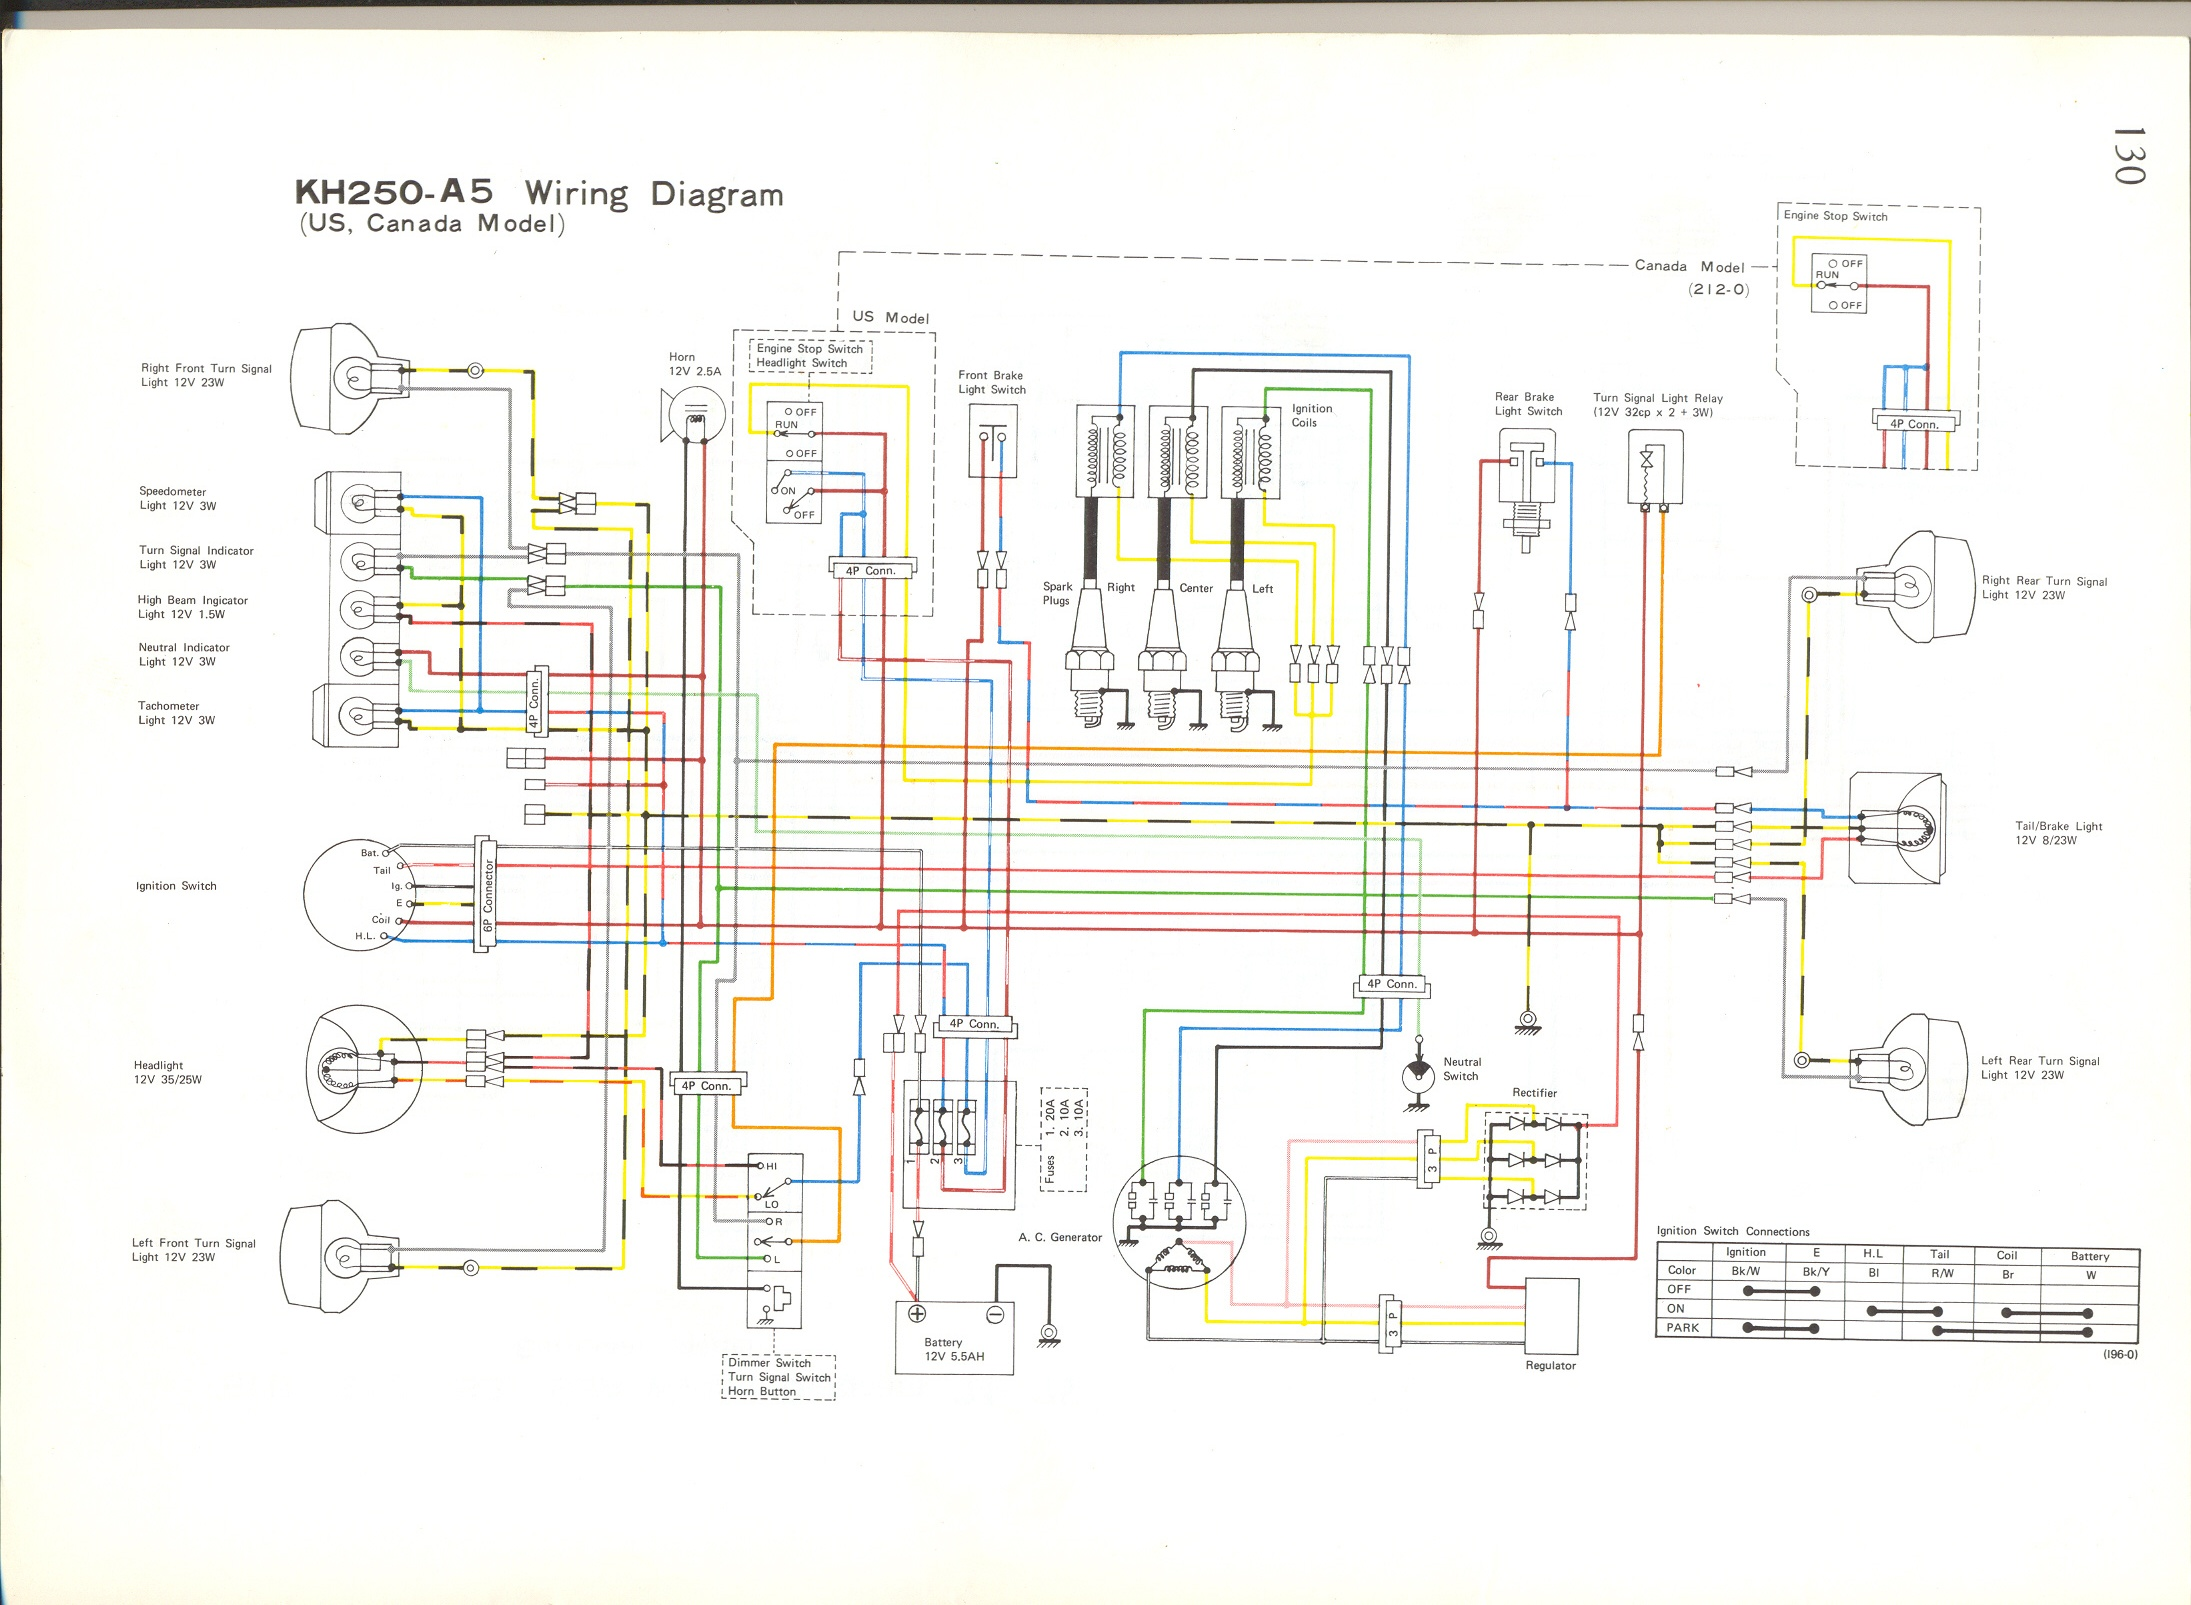 6 Wire Cdi Diagram Kawasaki | Wiring Diagram Understanding Electrical Diagrams on circuit design, networking diagrams, understanding electrical prints, understanding organizational charts, understanding electrical wiring, understanding electrical drawings, digital electronics, understanding electrical floor plans, understanding engineering drawings, network analysis, function block diagram, understanding electrical symbols, integrated circuit layout, one-line diagram, wiring diagram, block diagram, understanding blueprints, electronic circuit diagrams, data flow diagram, wiring diagrams,